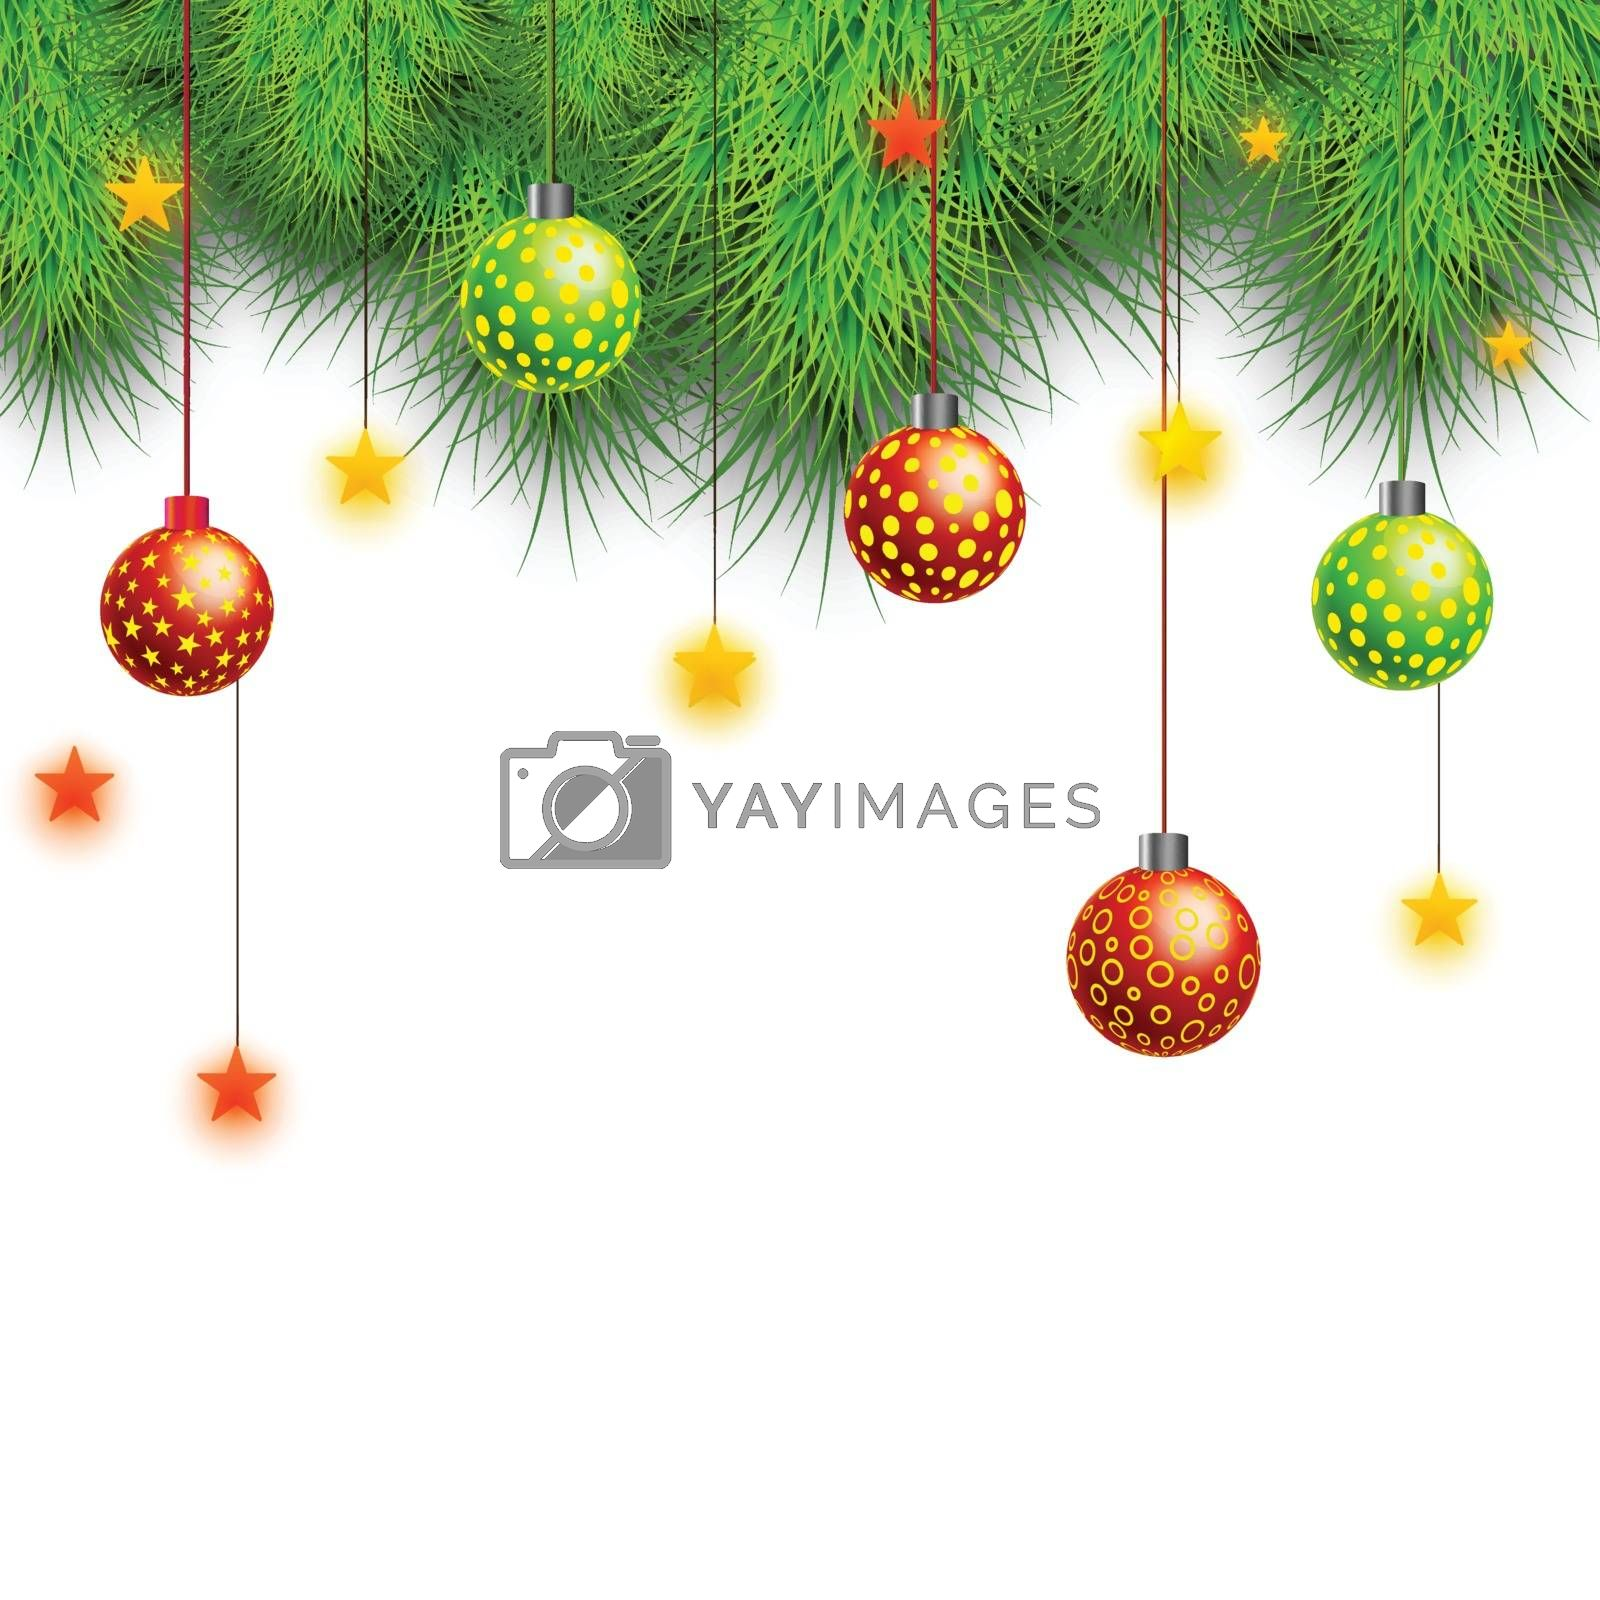 Merry Christmas celebration background with glossy hanging balls, stars and fir tree branches.